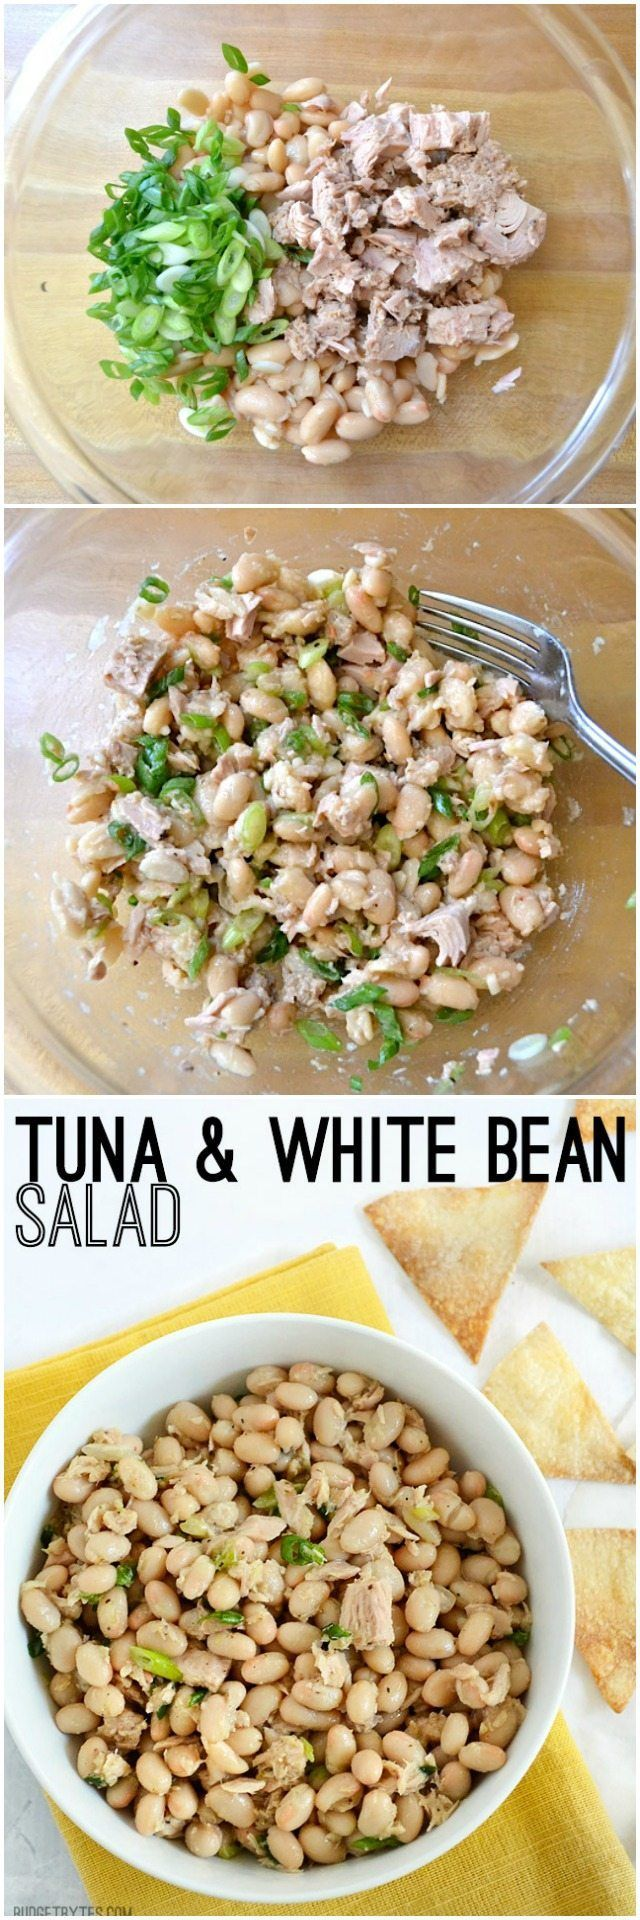 Tuna & White Bean Salad - BudgetBytes.com Add a dash of liquid smoke, a scoop of plain Greek yogurt, server on a bed of spicy greens or arugula.  use great northern beans if you have them, and Trader Joe's yellowfin tuna in olive oil, with most of the oil drained off, if you have it.